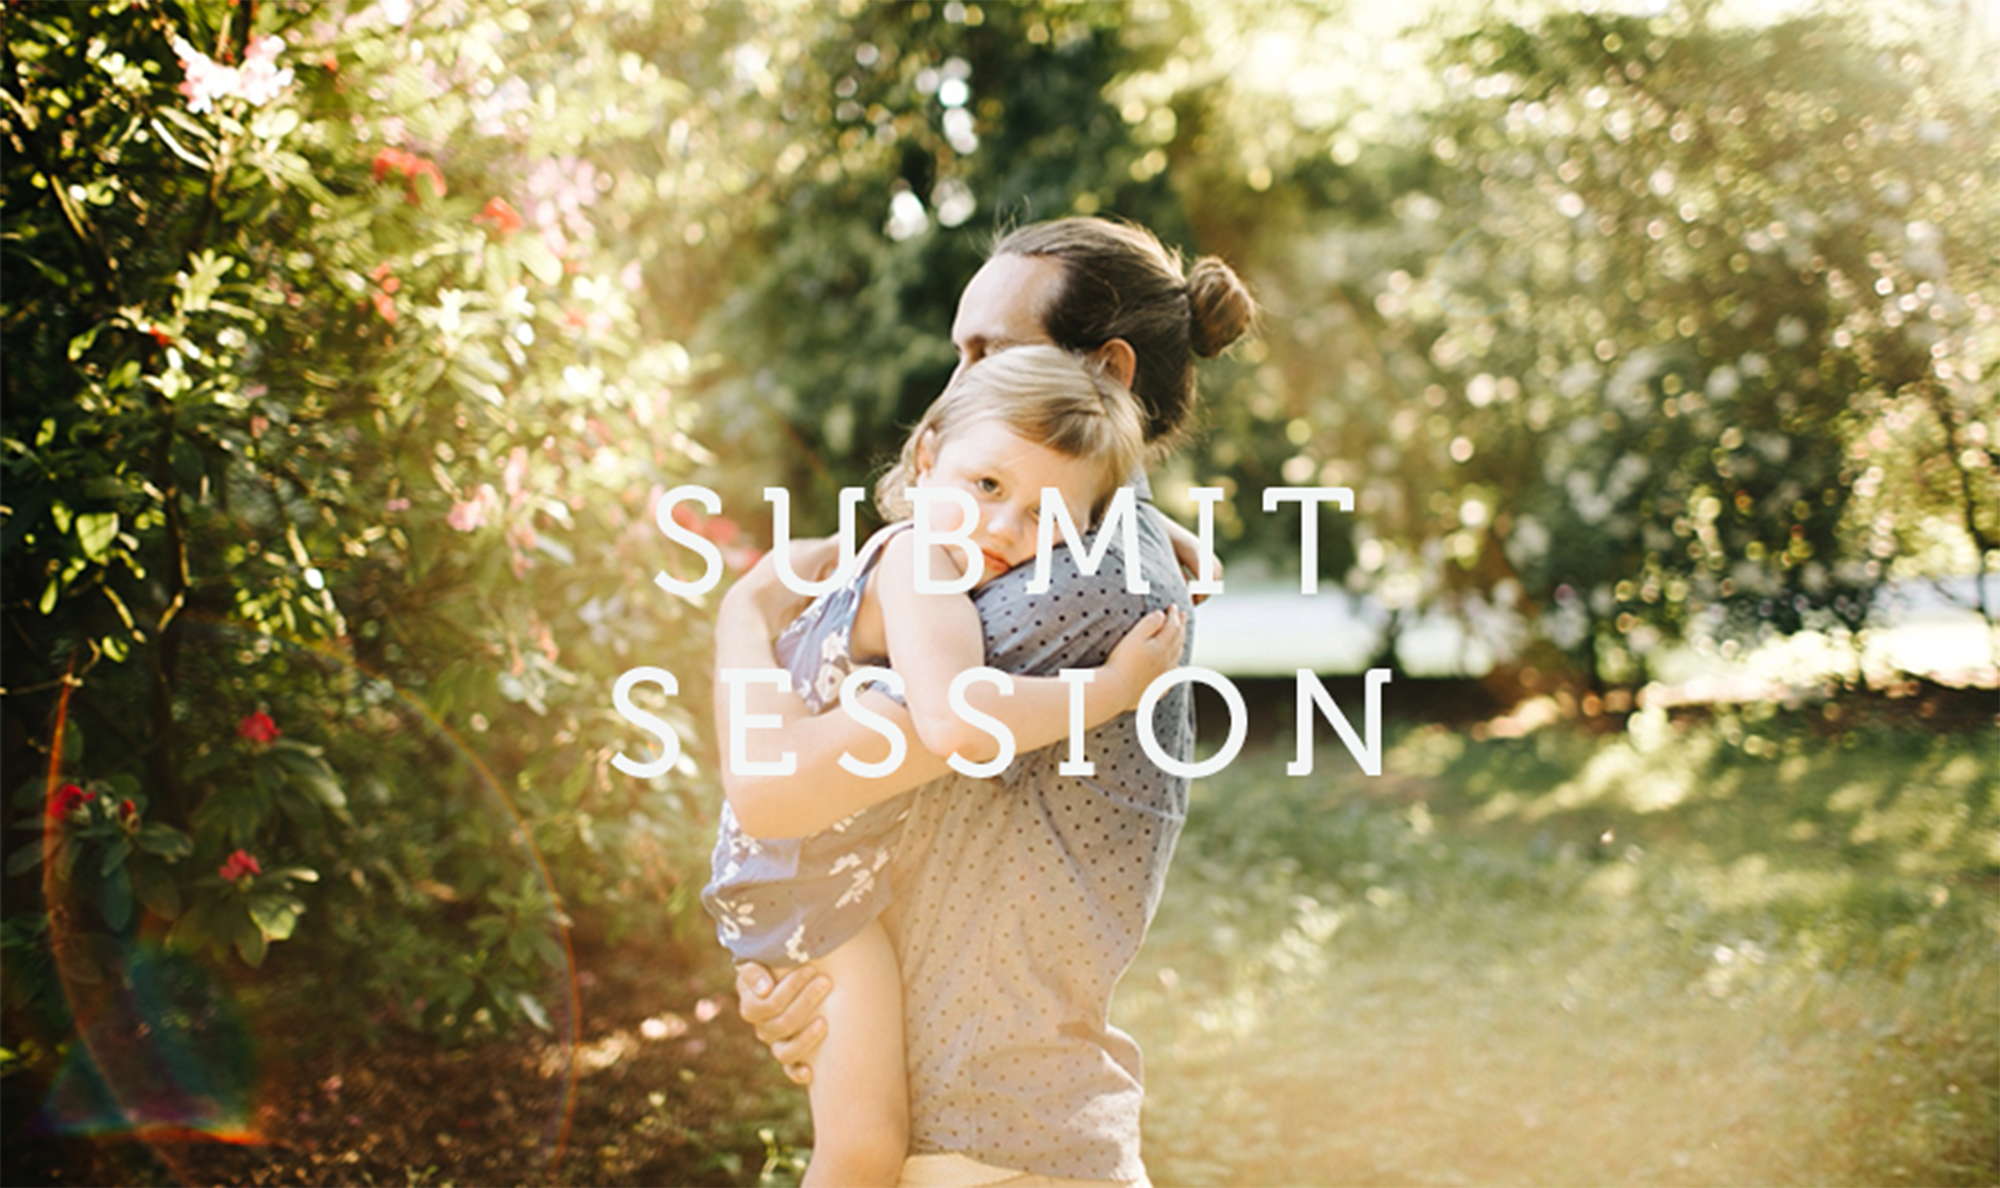 Submit session